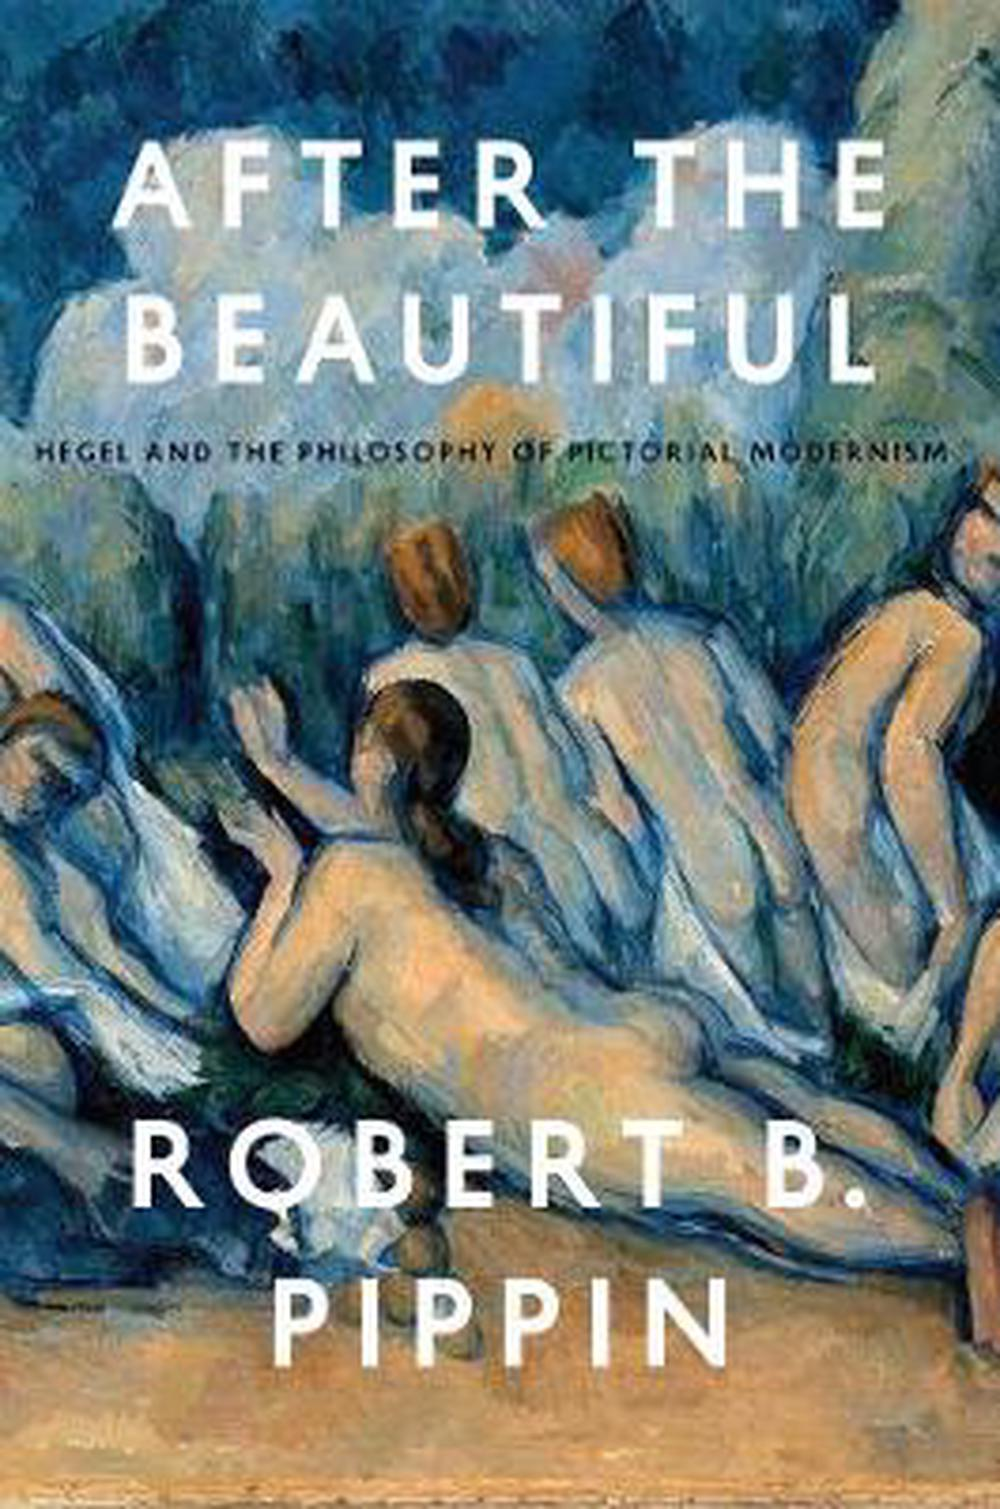 After the Beautiful Hegel and the Philosophy of Pictorial Modernism by Robert B